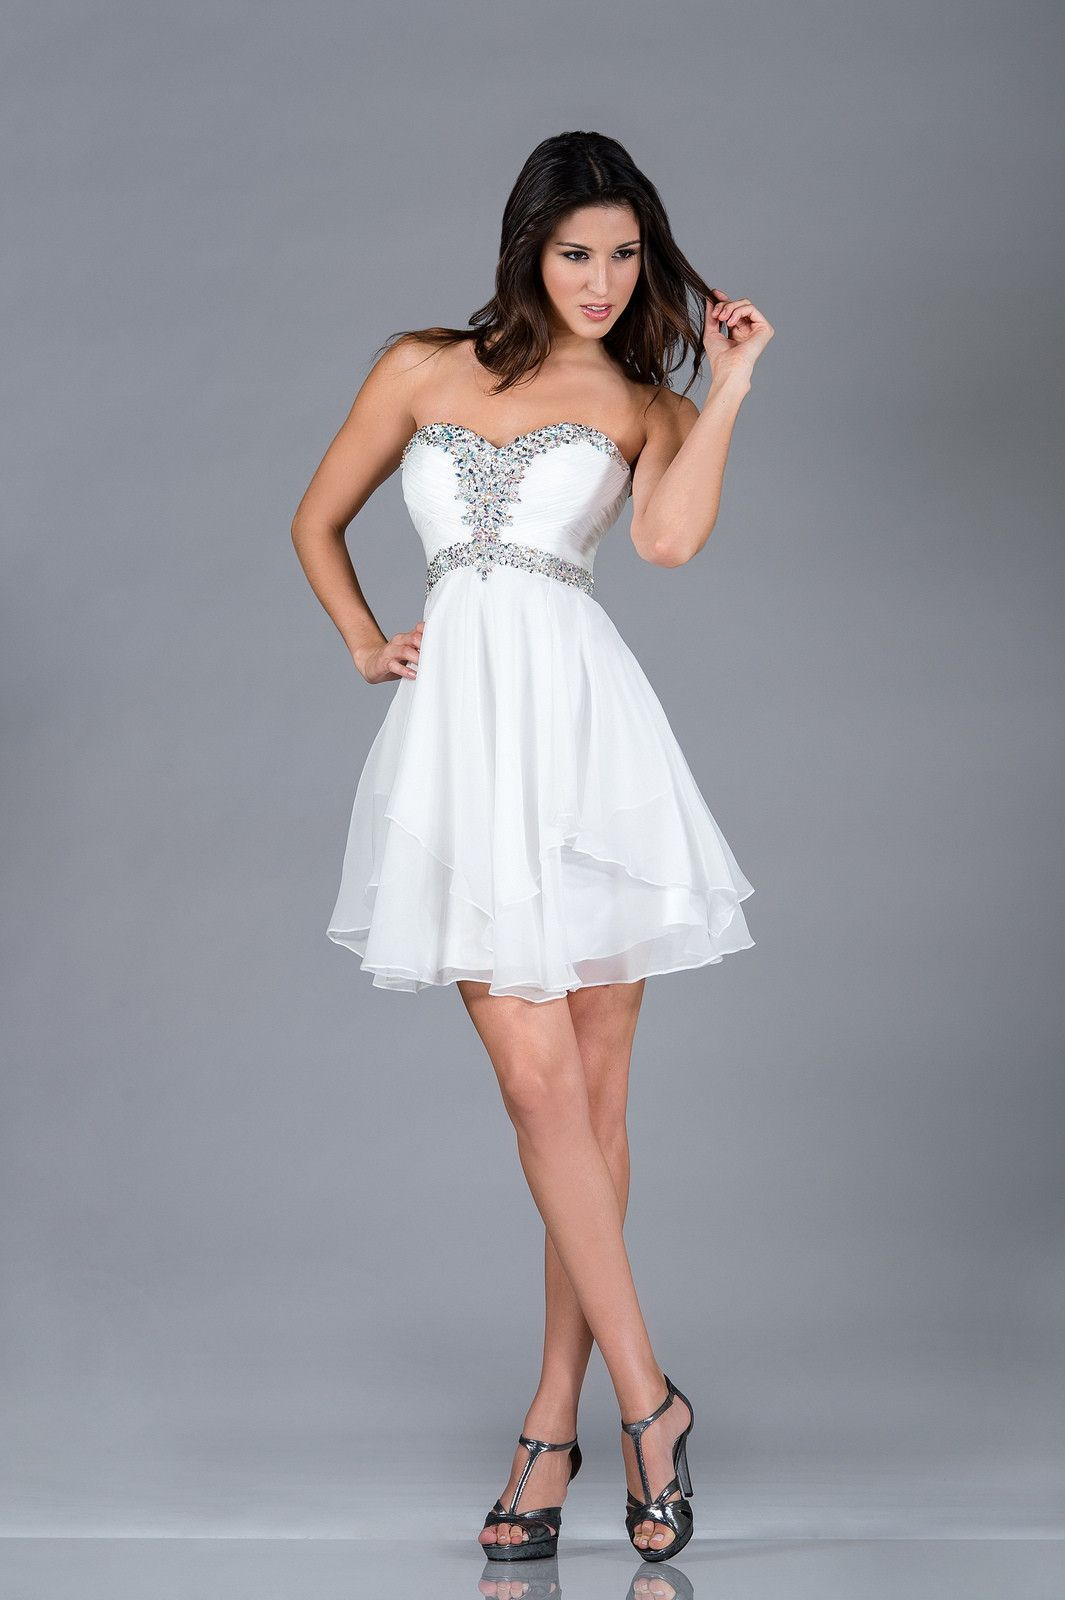 Mini white wedding dress  Mini Short Strapless Off White Pleated Layered Cocktail Party Dress